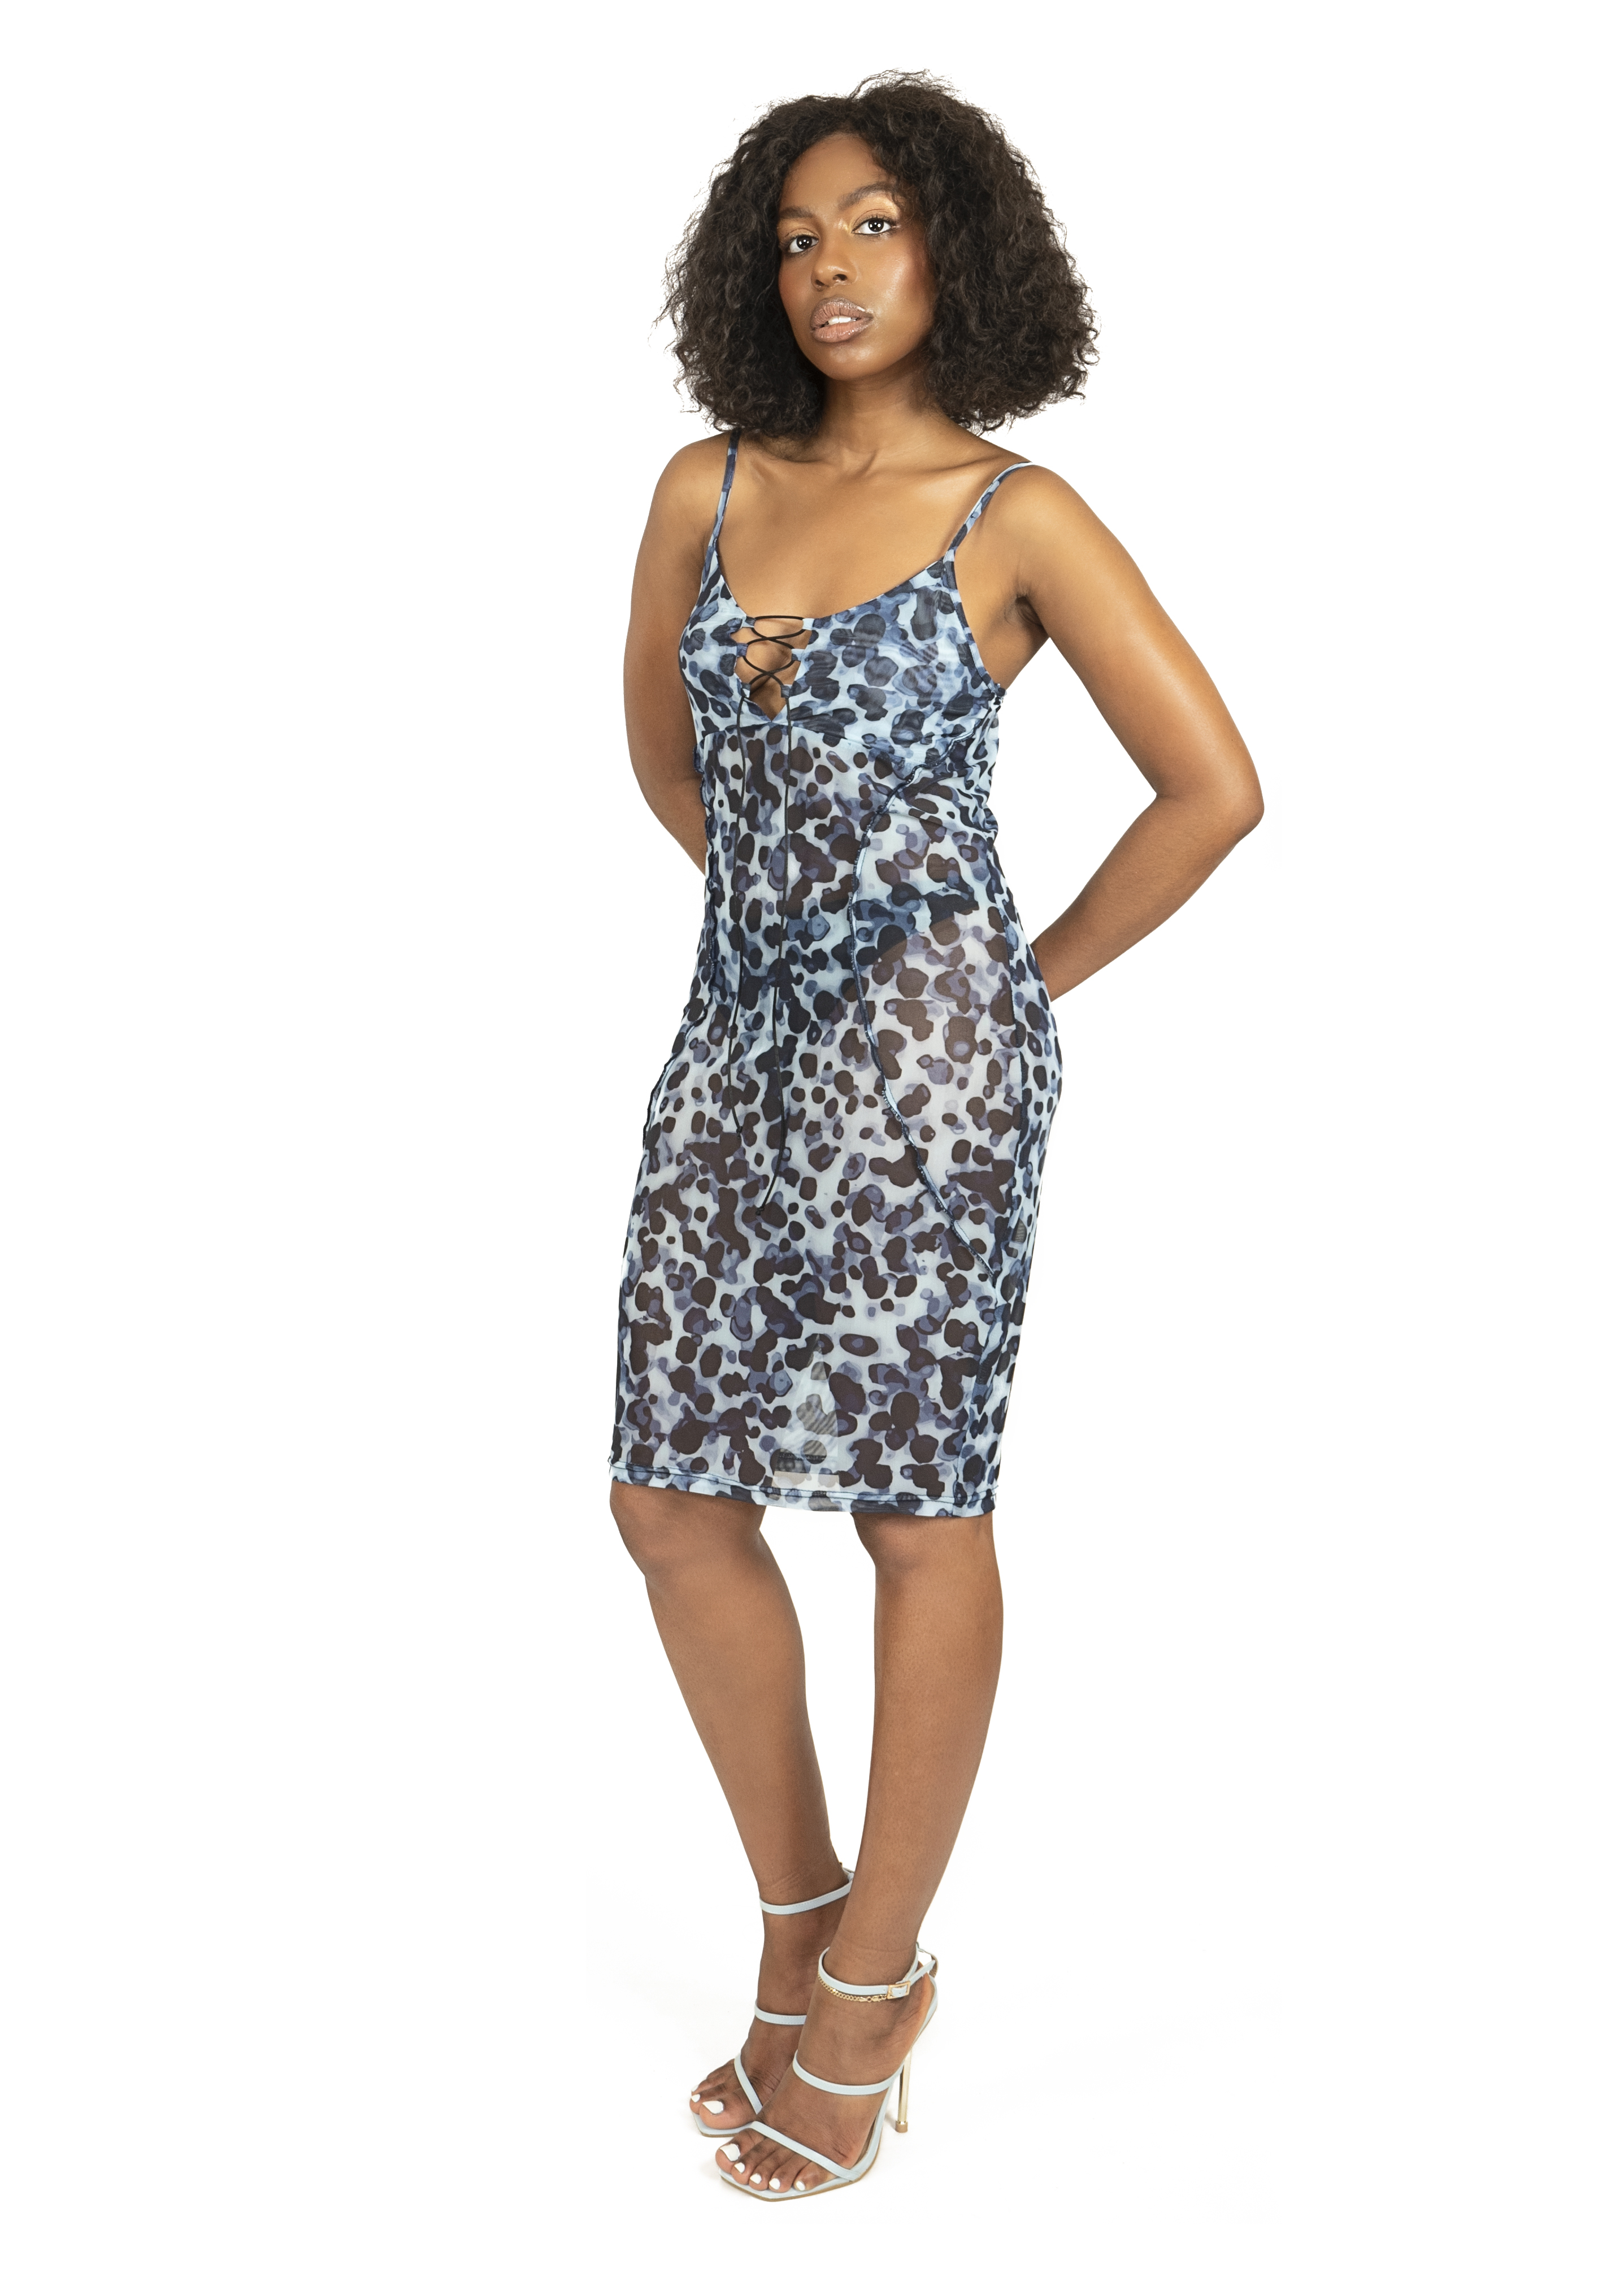 Dress_cloths_garments_product_photos_with_model_20